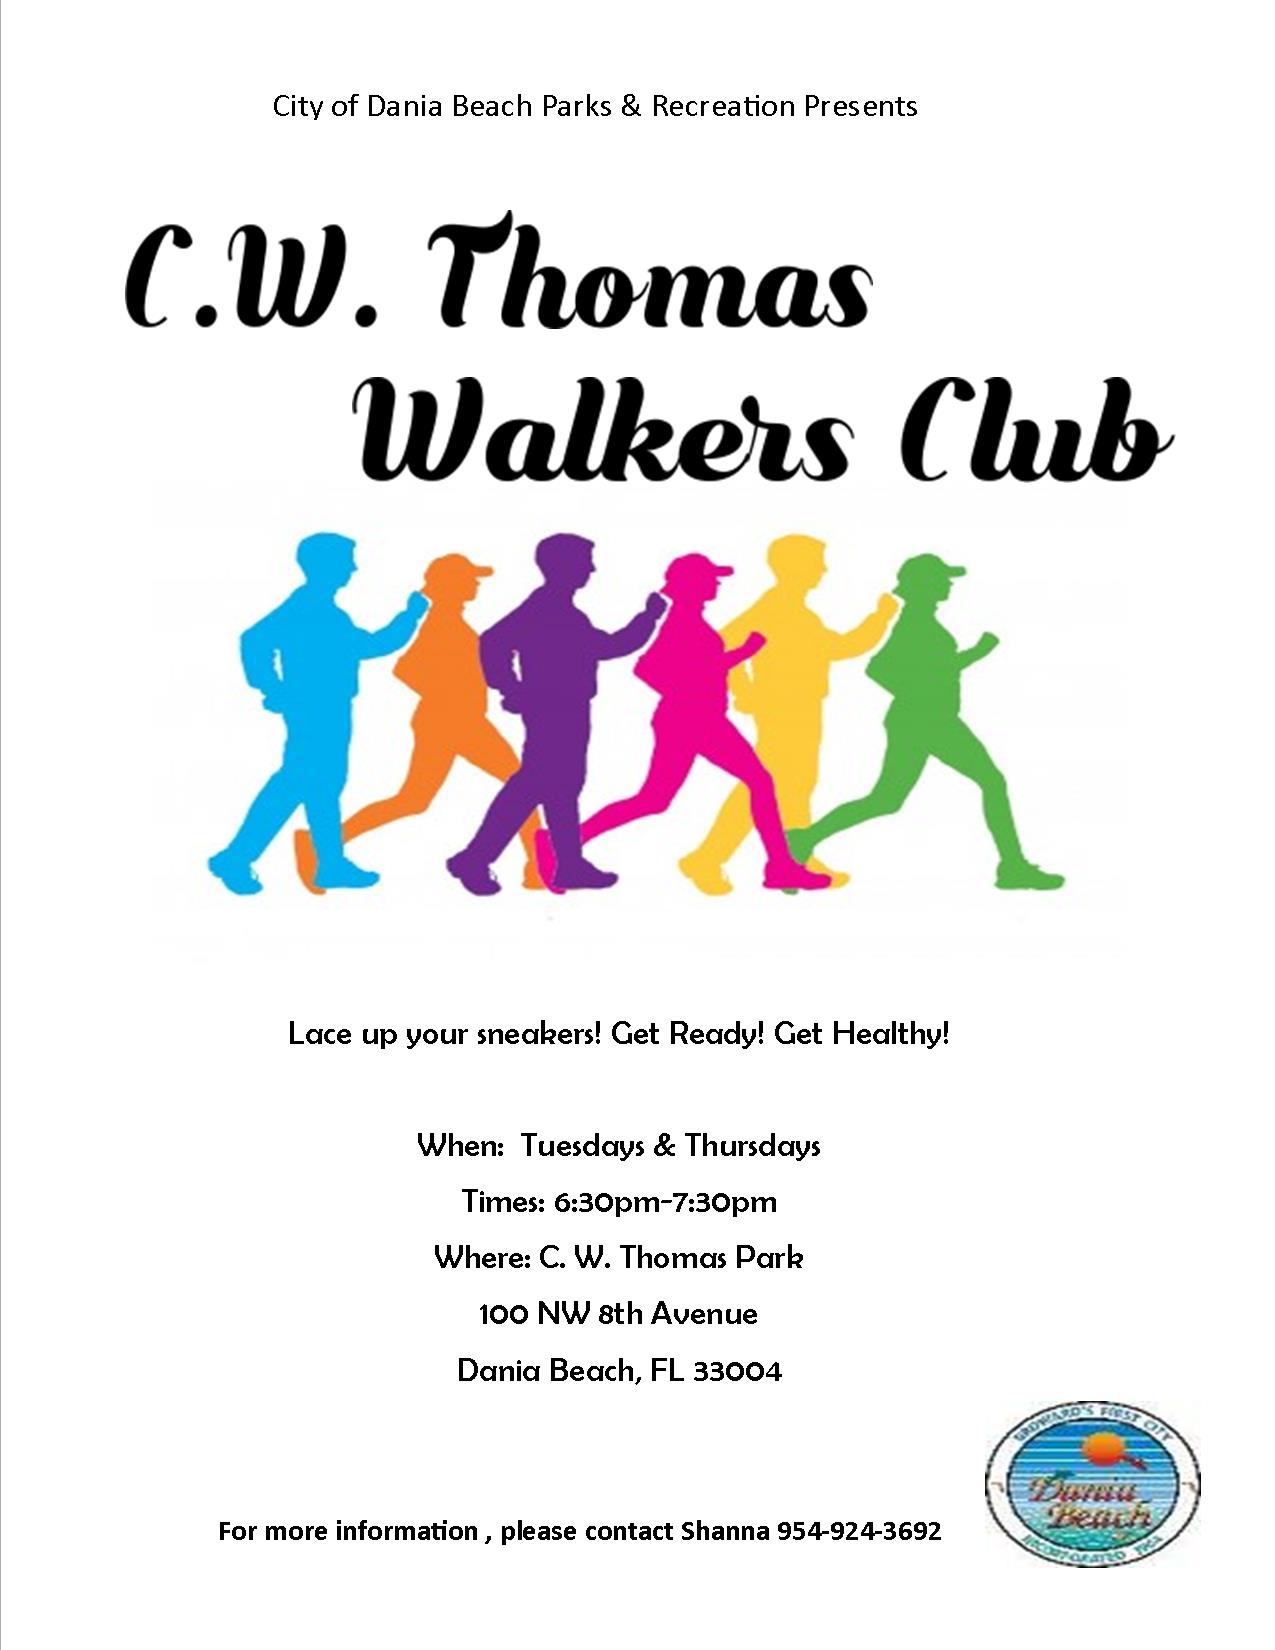 Walkers Club at CW Thomas Park Dania Beach